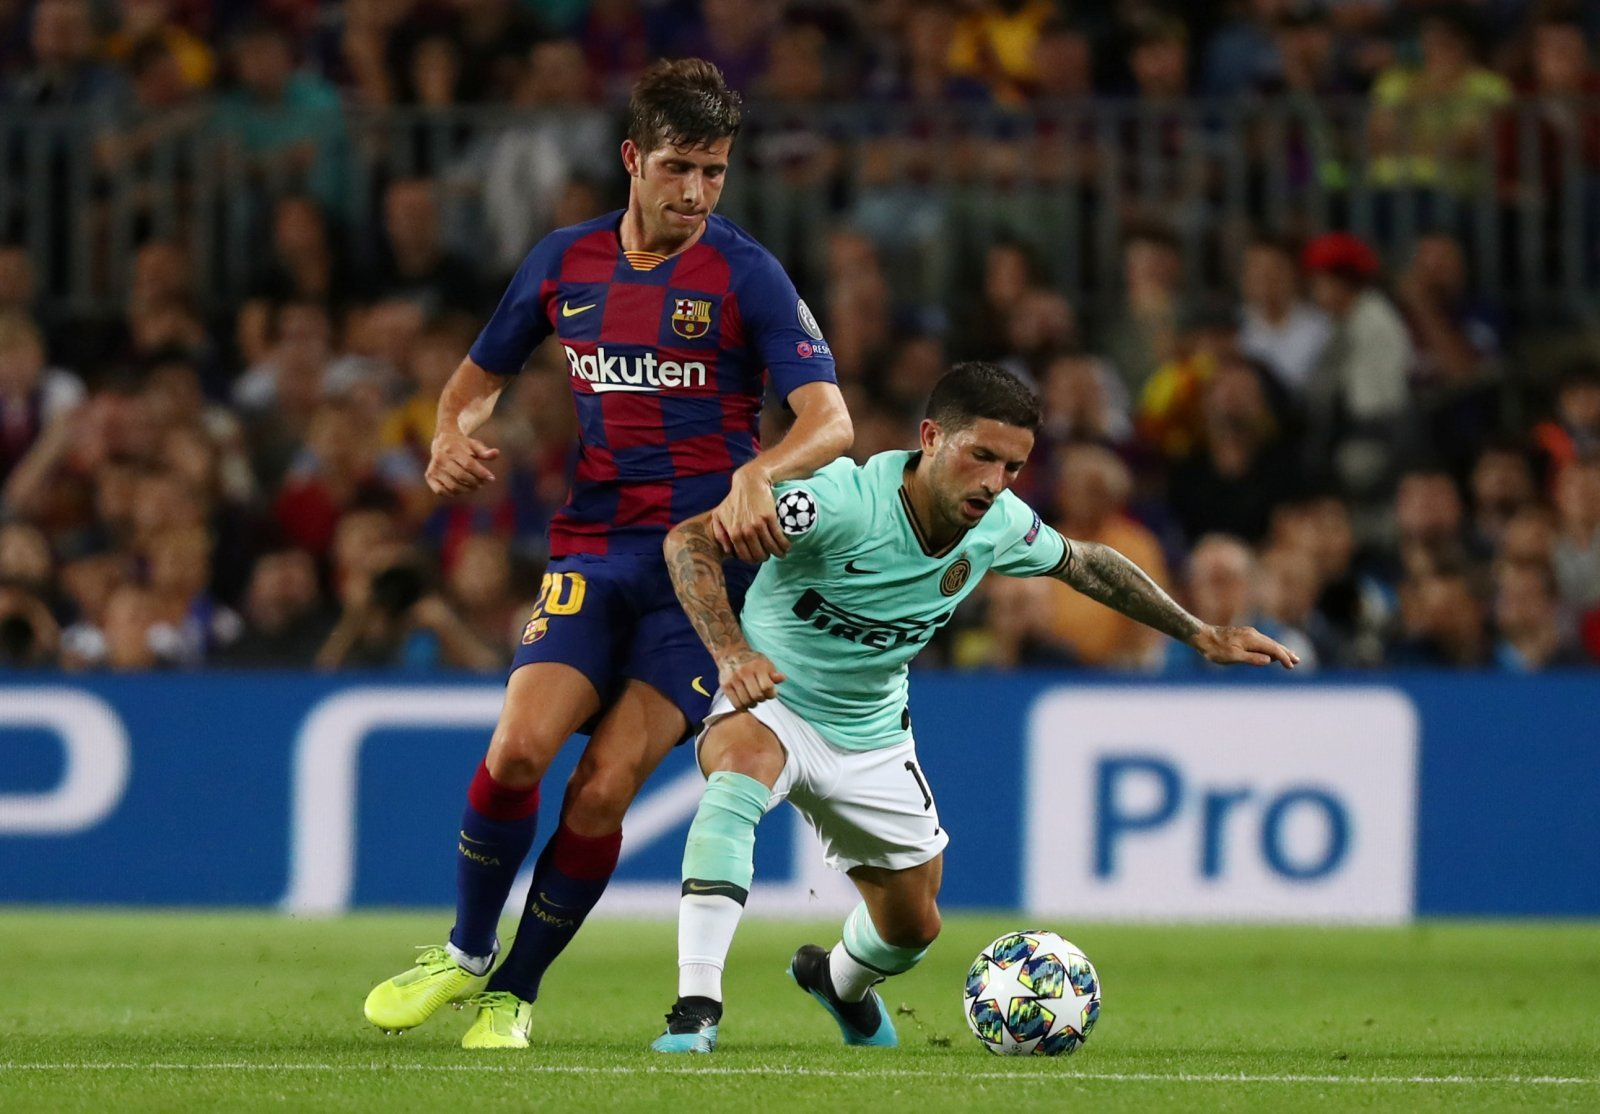 Barcelona: Some fans on Twitter were delighted Sergi Roberto came off injured